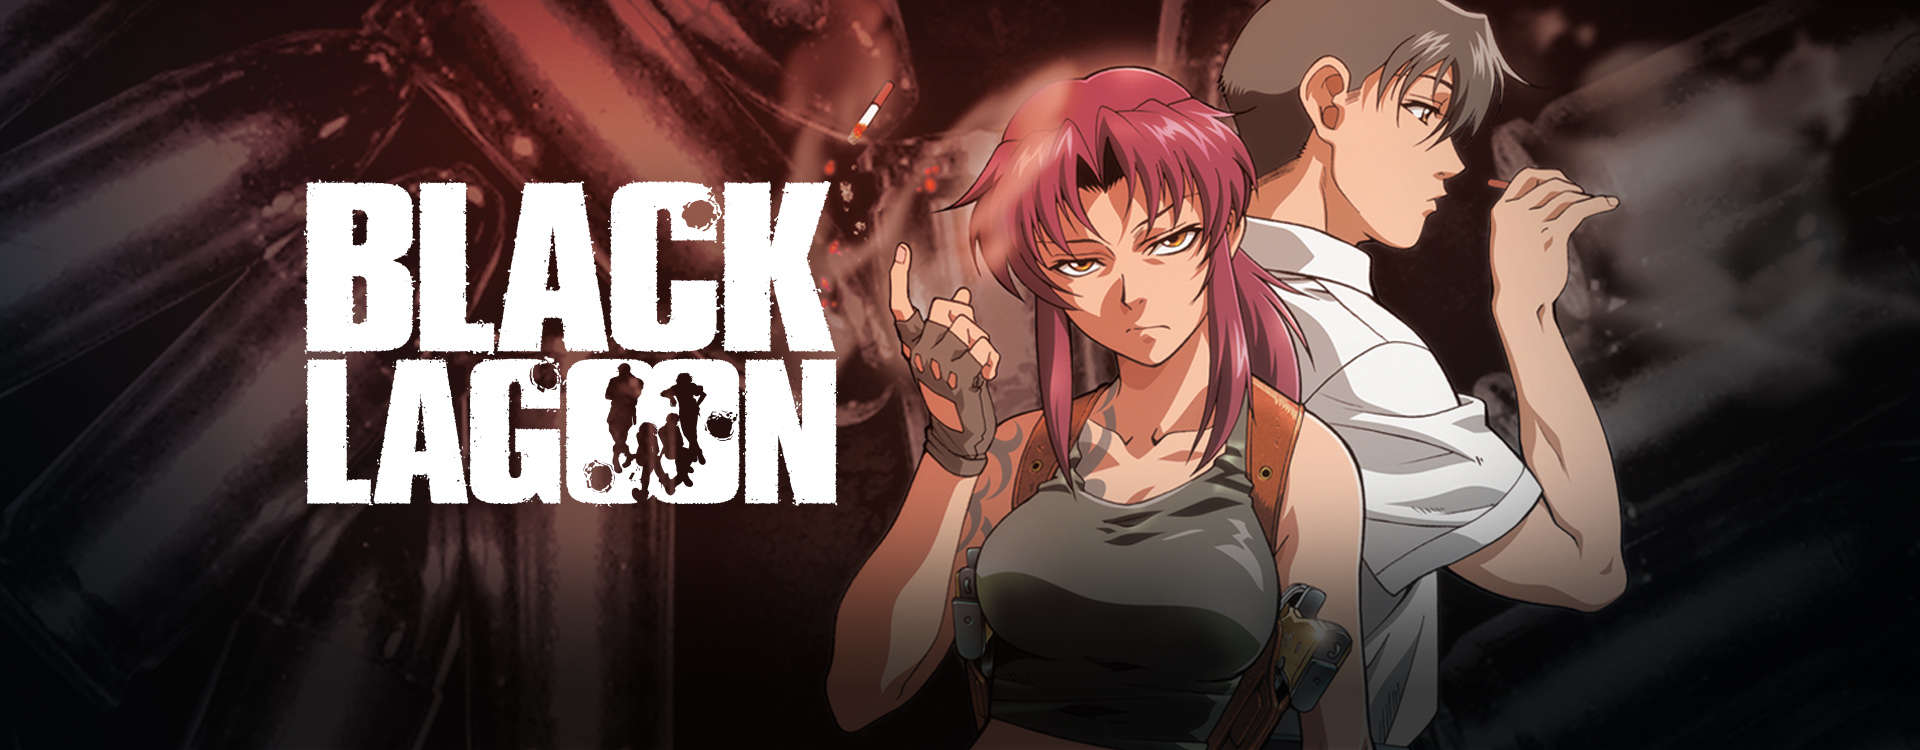 Image result for black lagoon anime